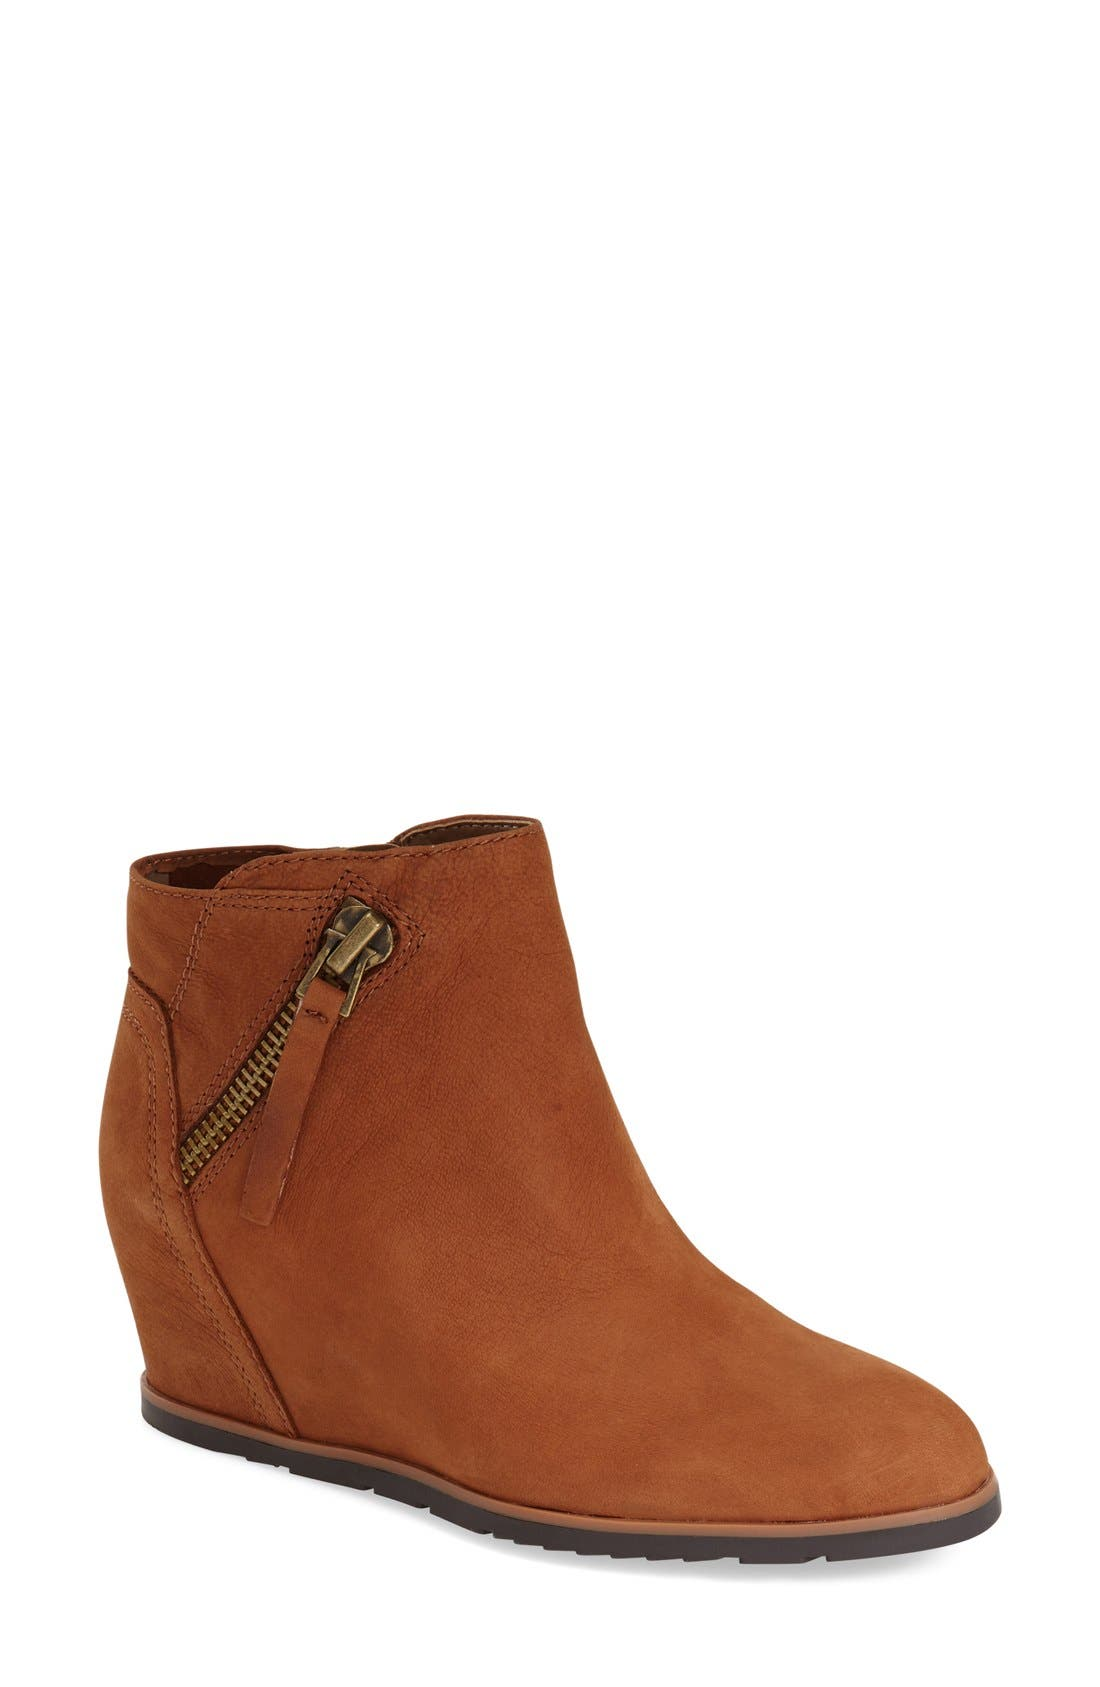 Alternate Image 1 Selected - Franco Sarto 'Calissa' Wedge Bootie (Women)